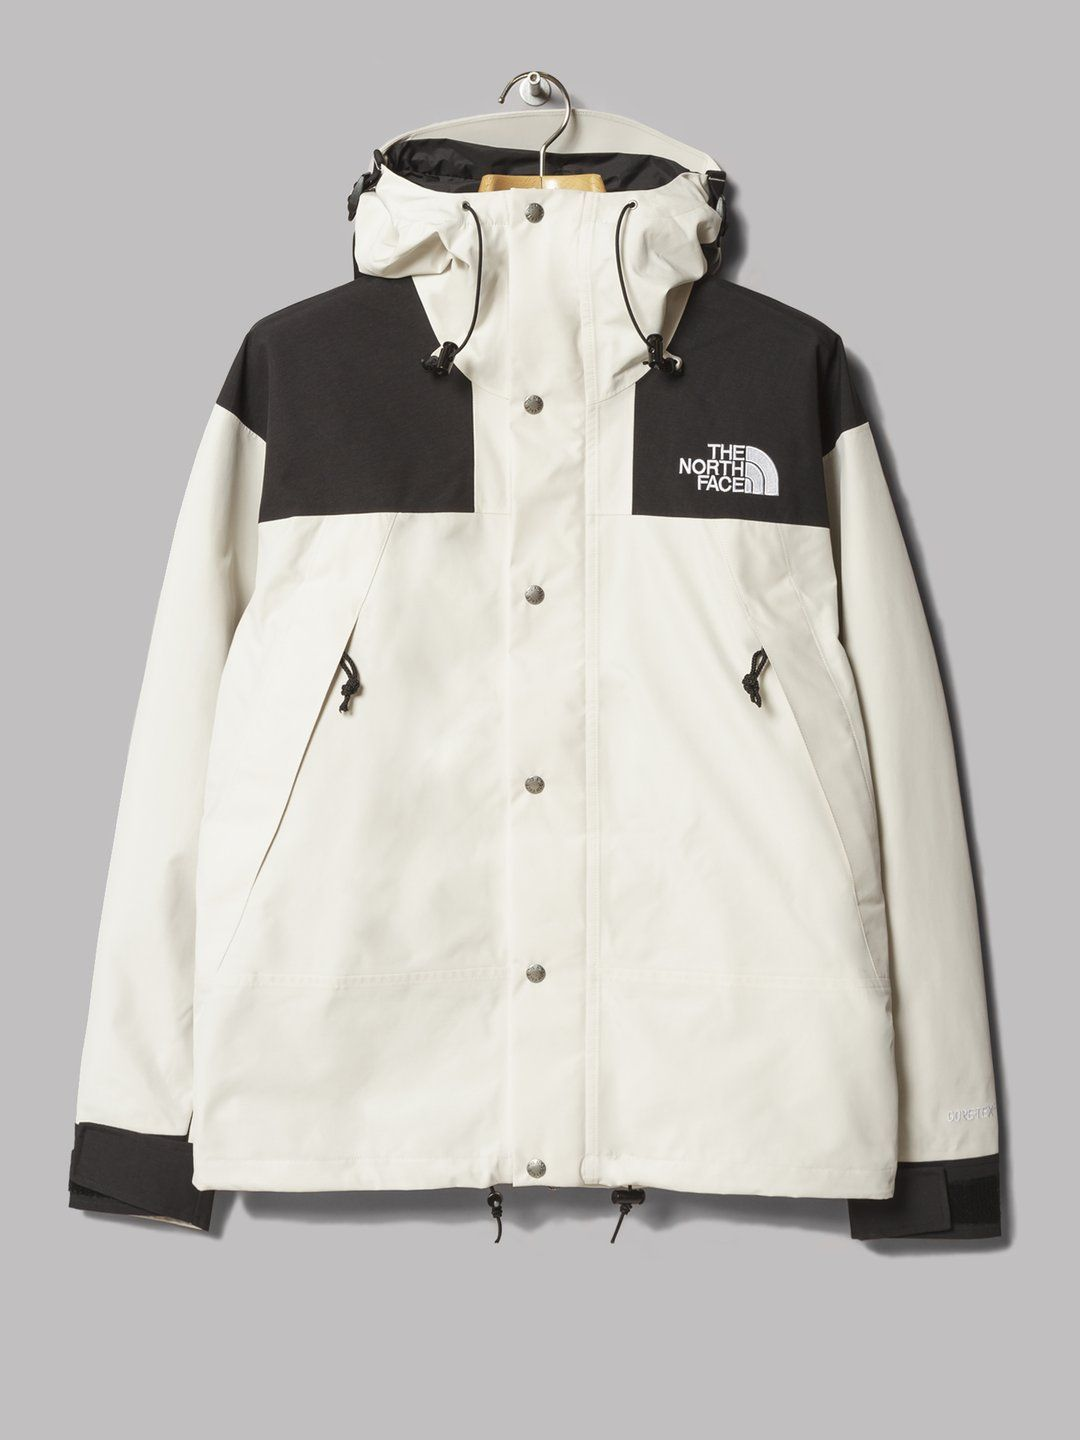 cd63f63c126 The North Face Goretex 1990 Mountain Jacket (Vintage White)